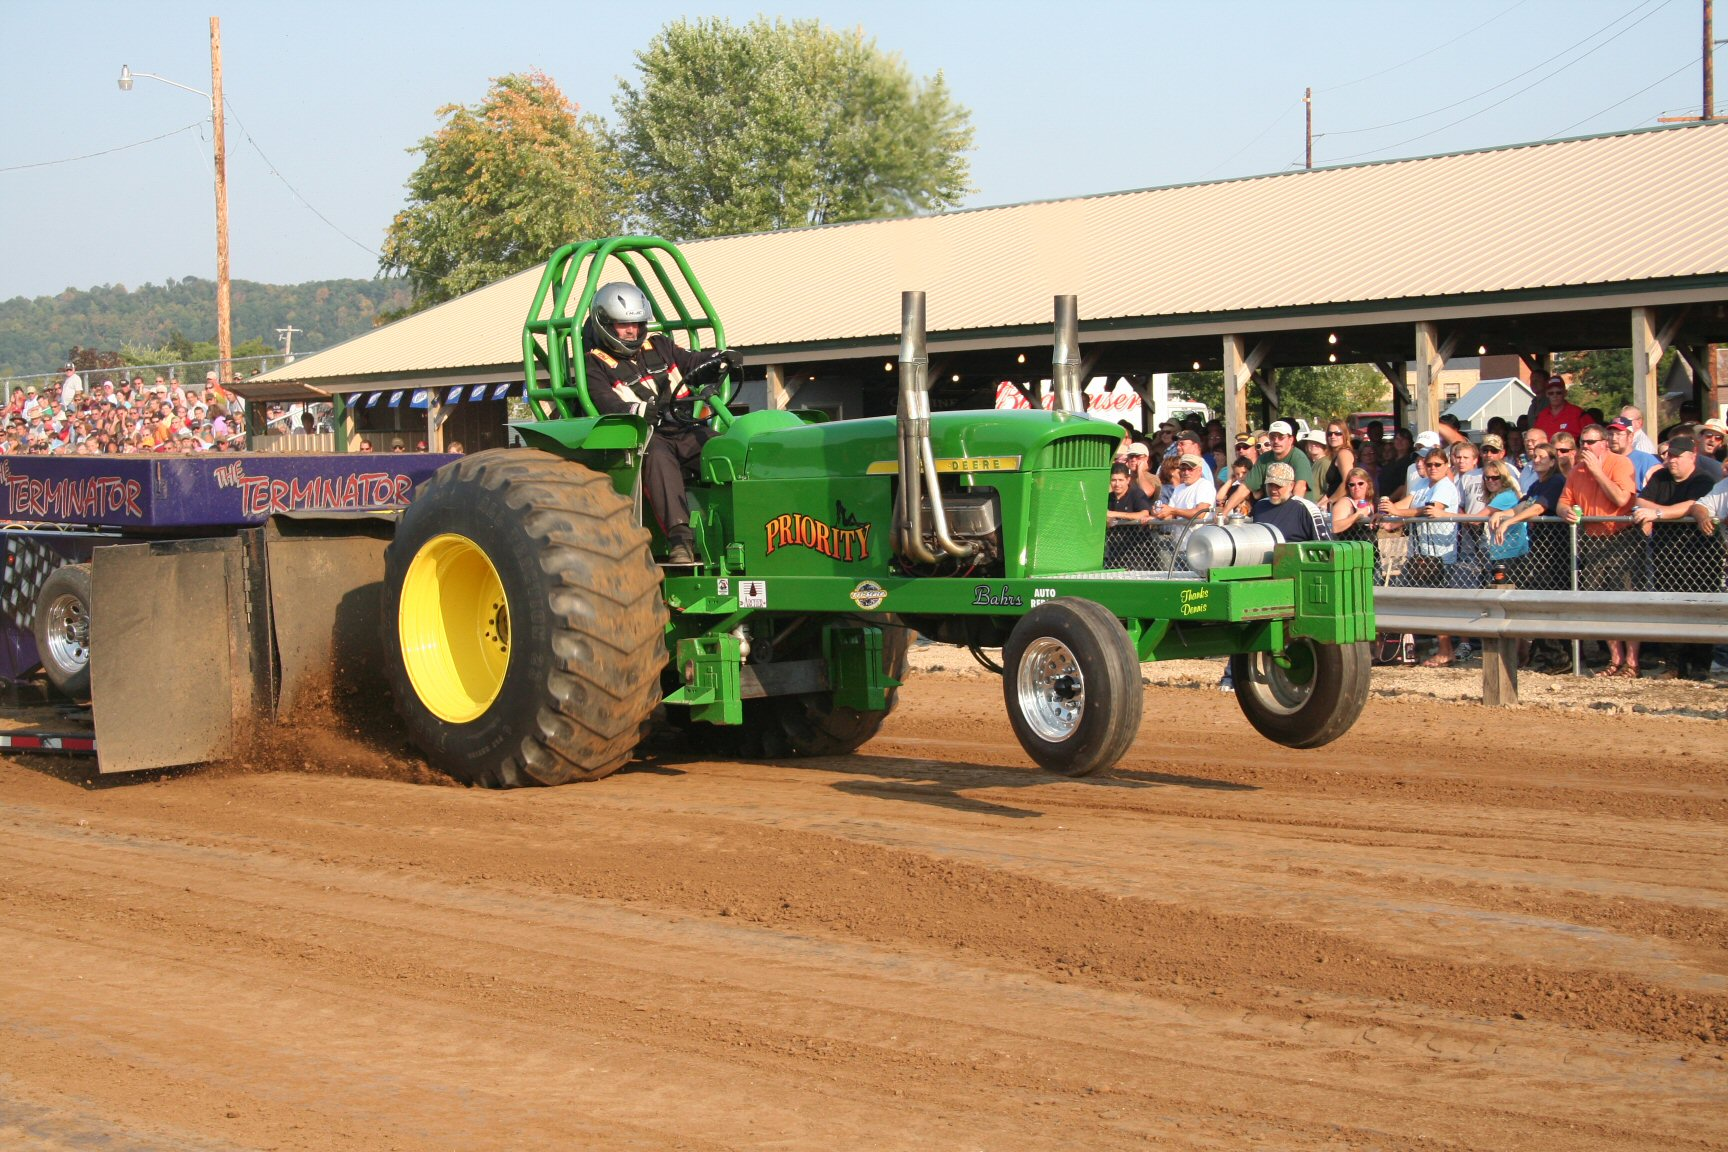 Tractor Pull 2 Picture Gallery: A John Deere Tractor Pull Extravaganza